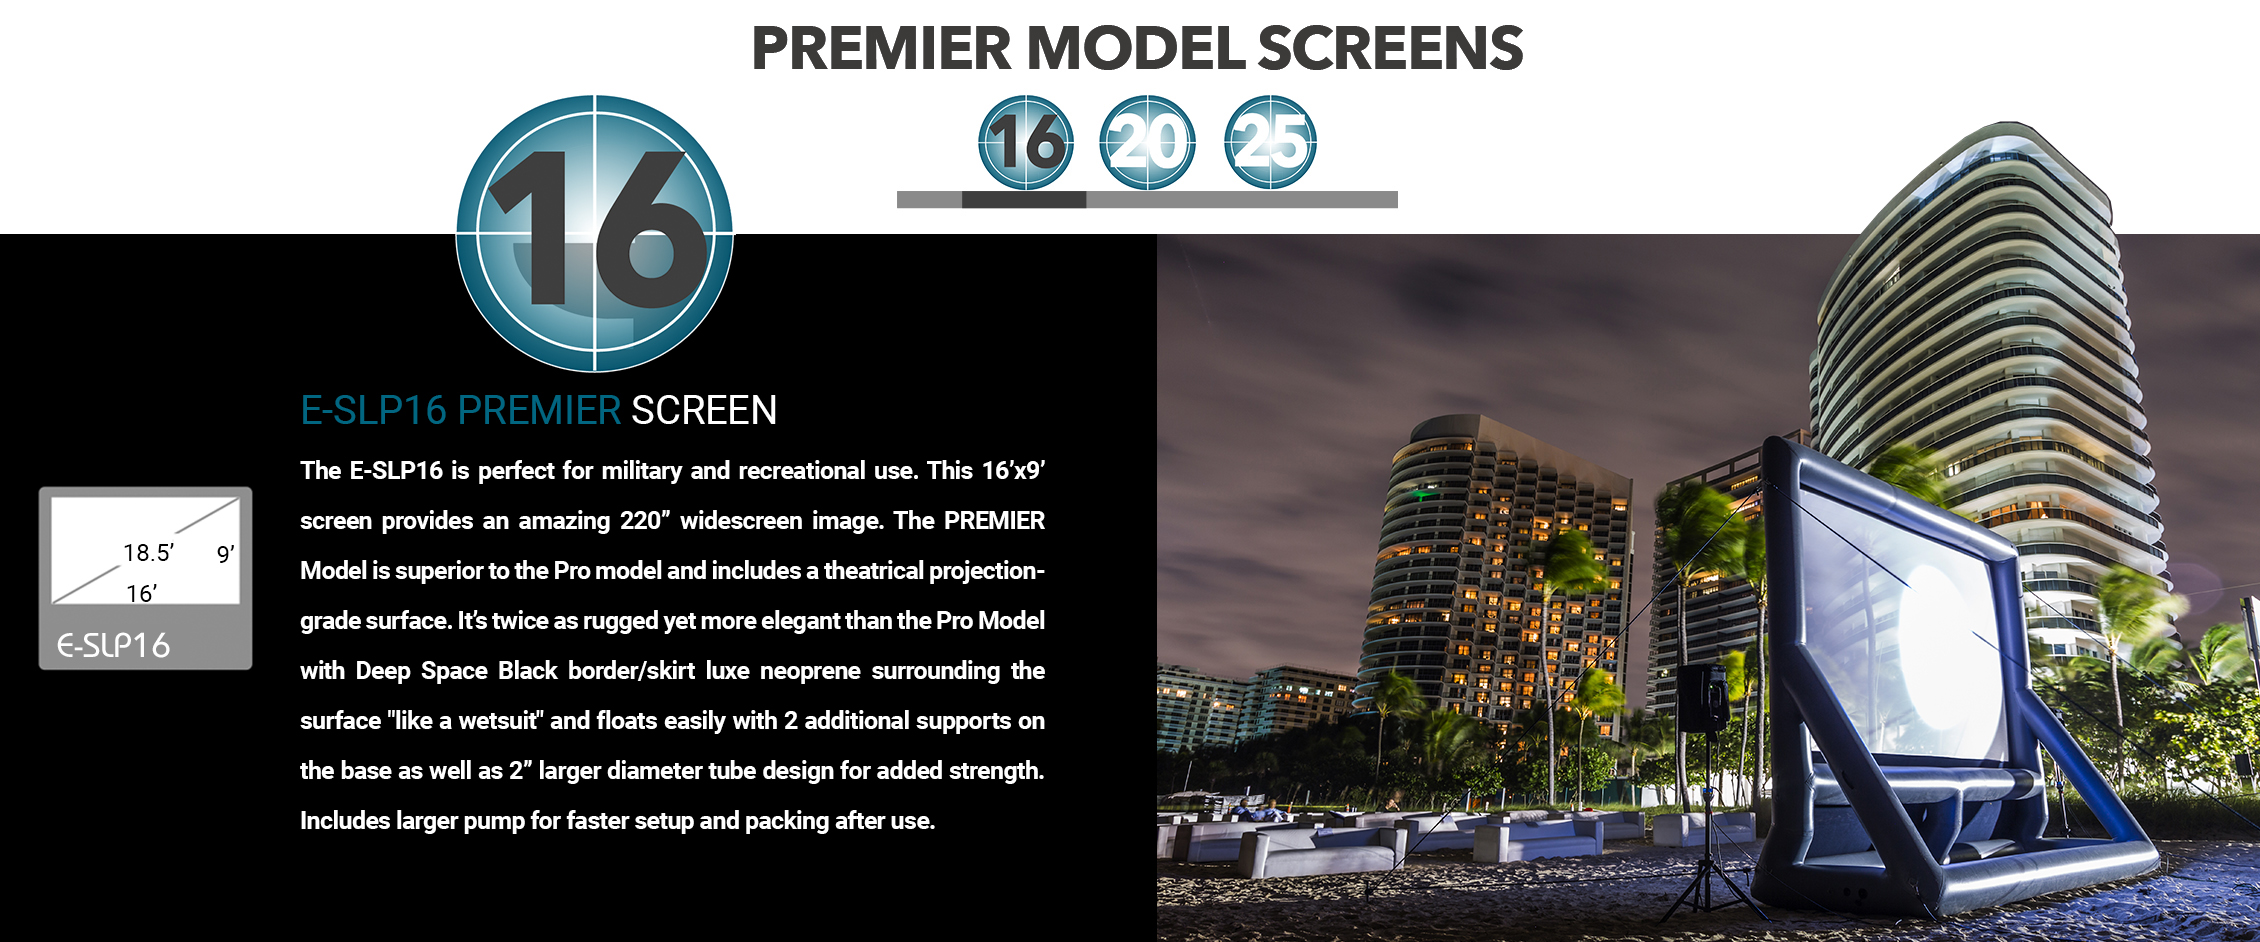 PRO MODEL SCREENS 9.jpg